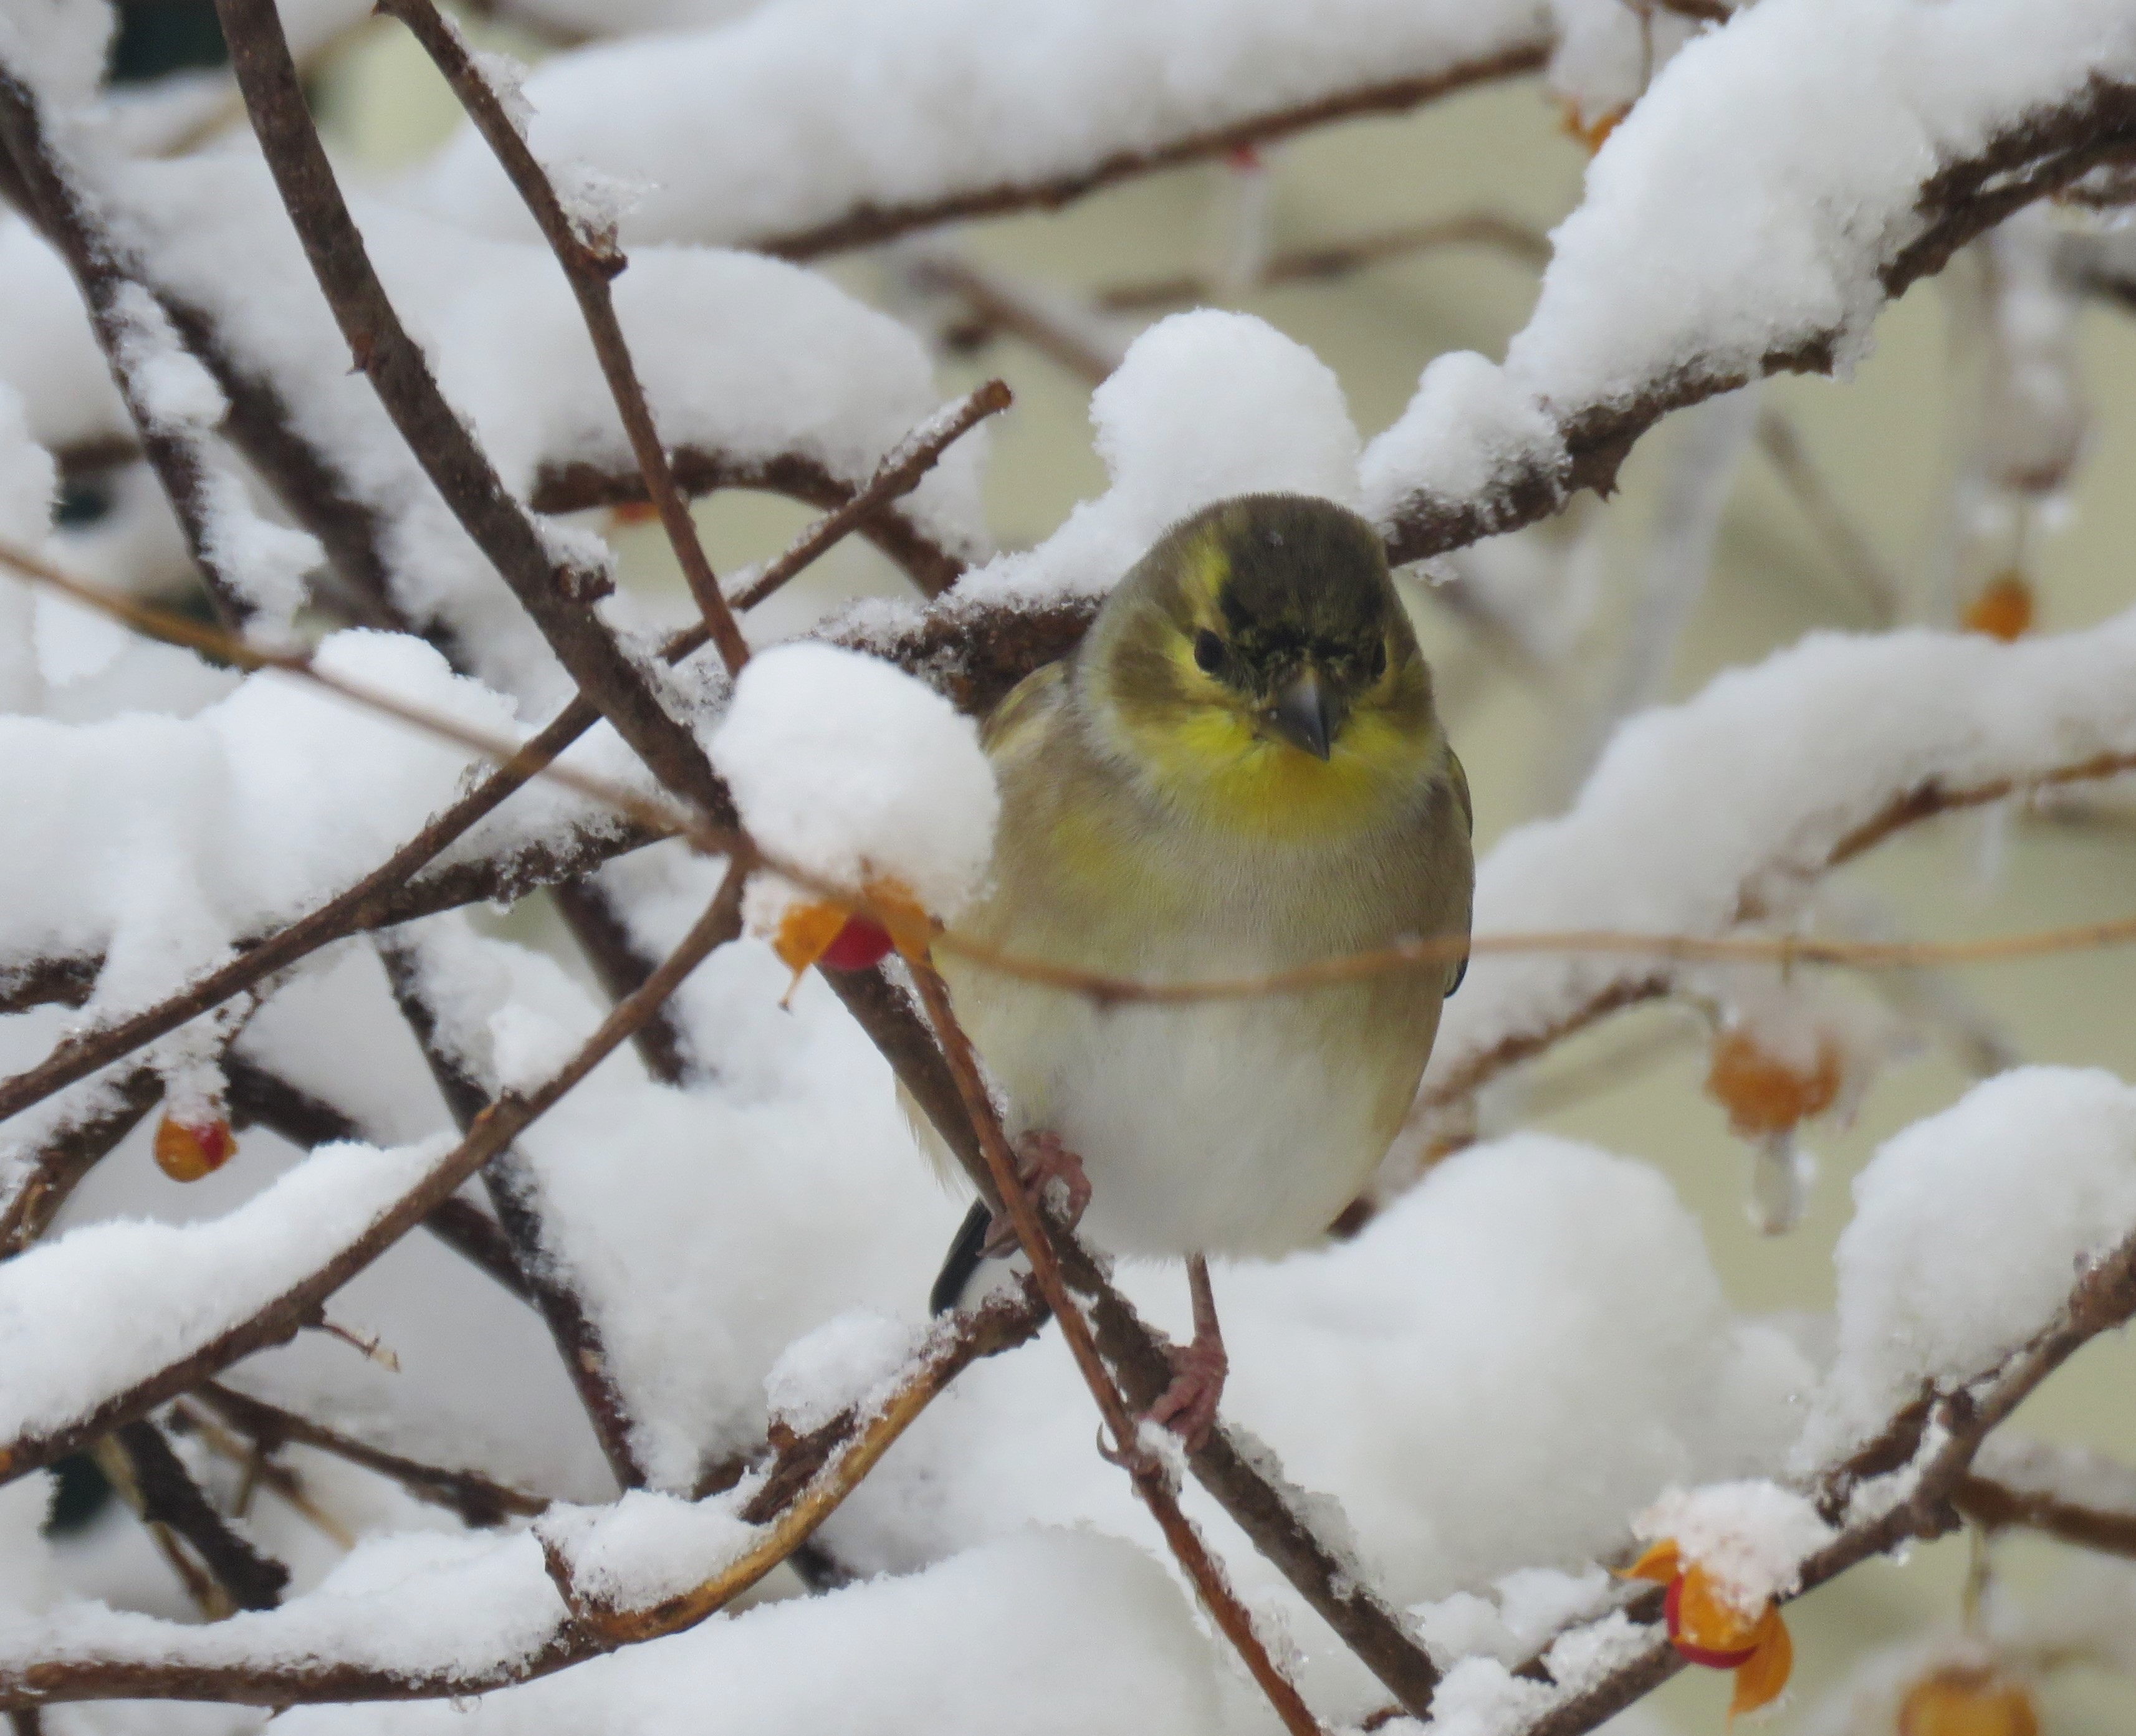 A goldfinch perched on a snow-covered branch